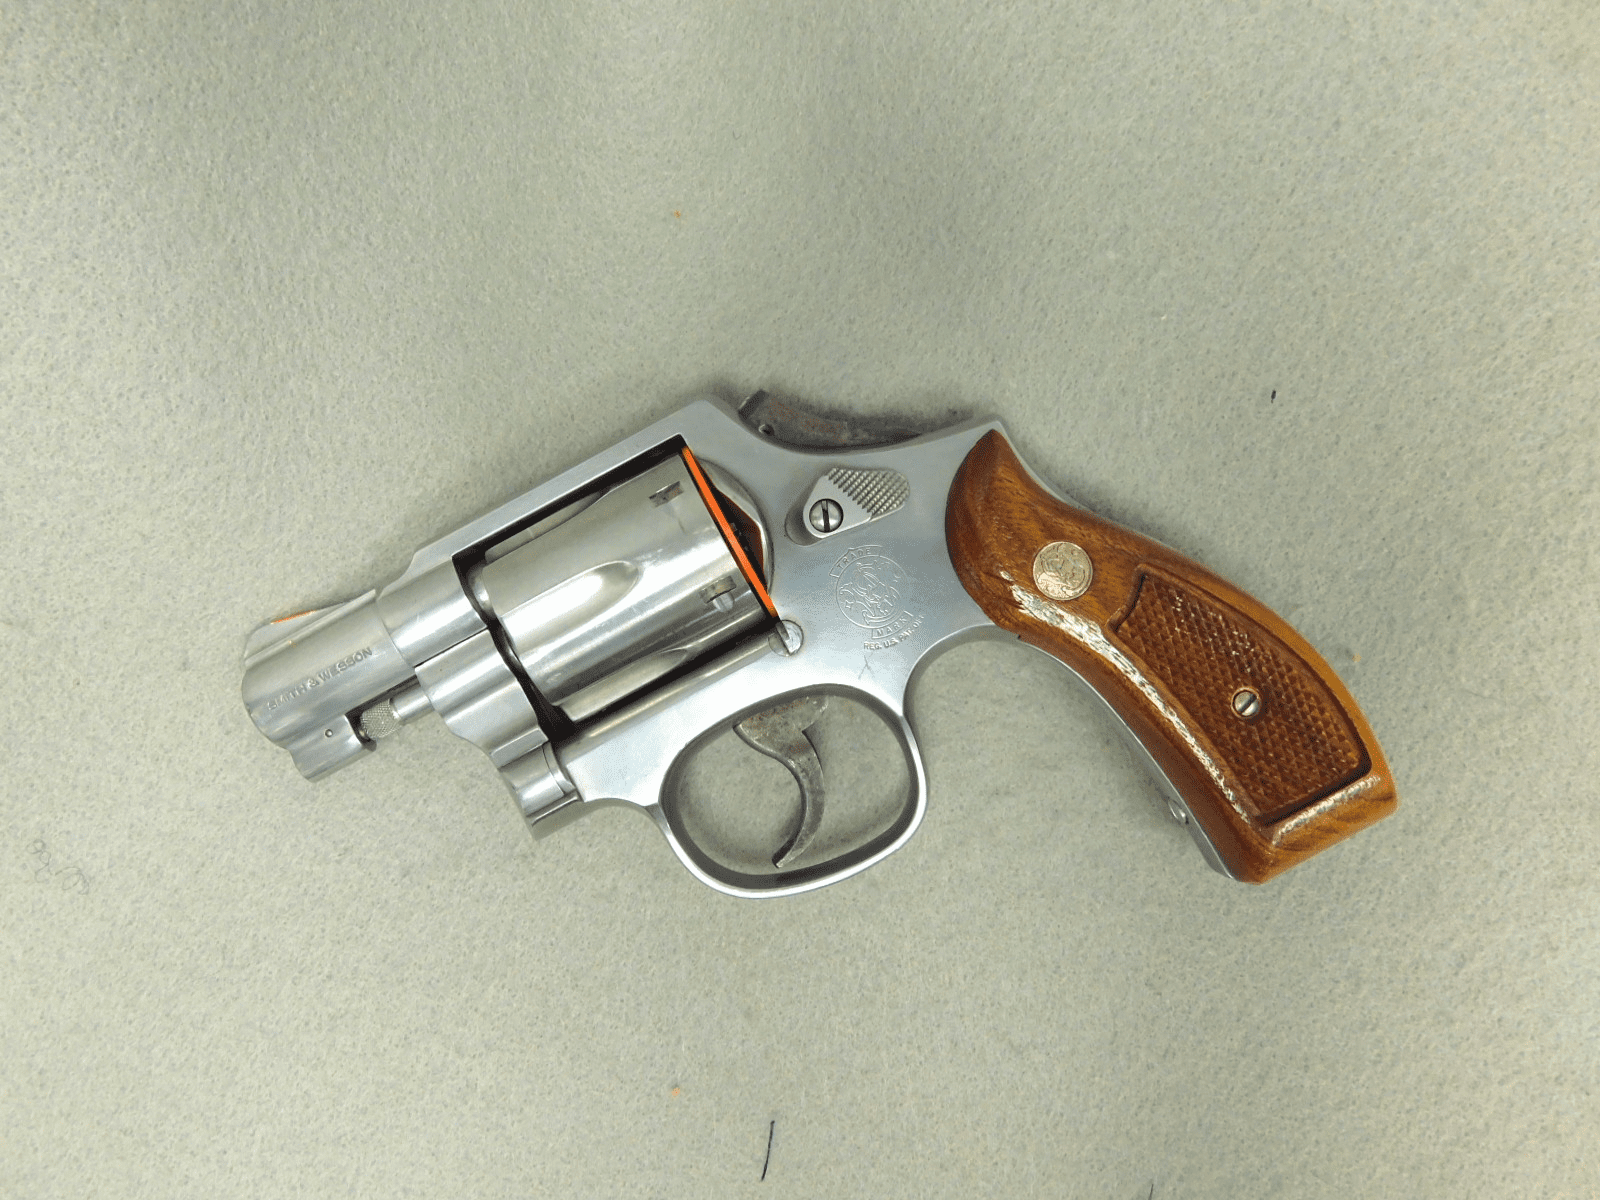 Smith & Wesson 64-4 (.38)